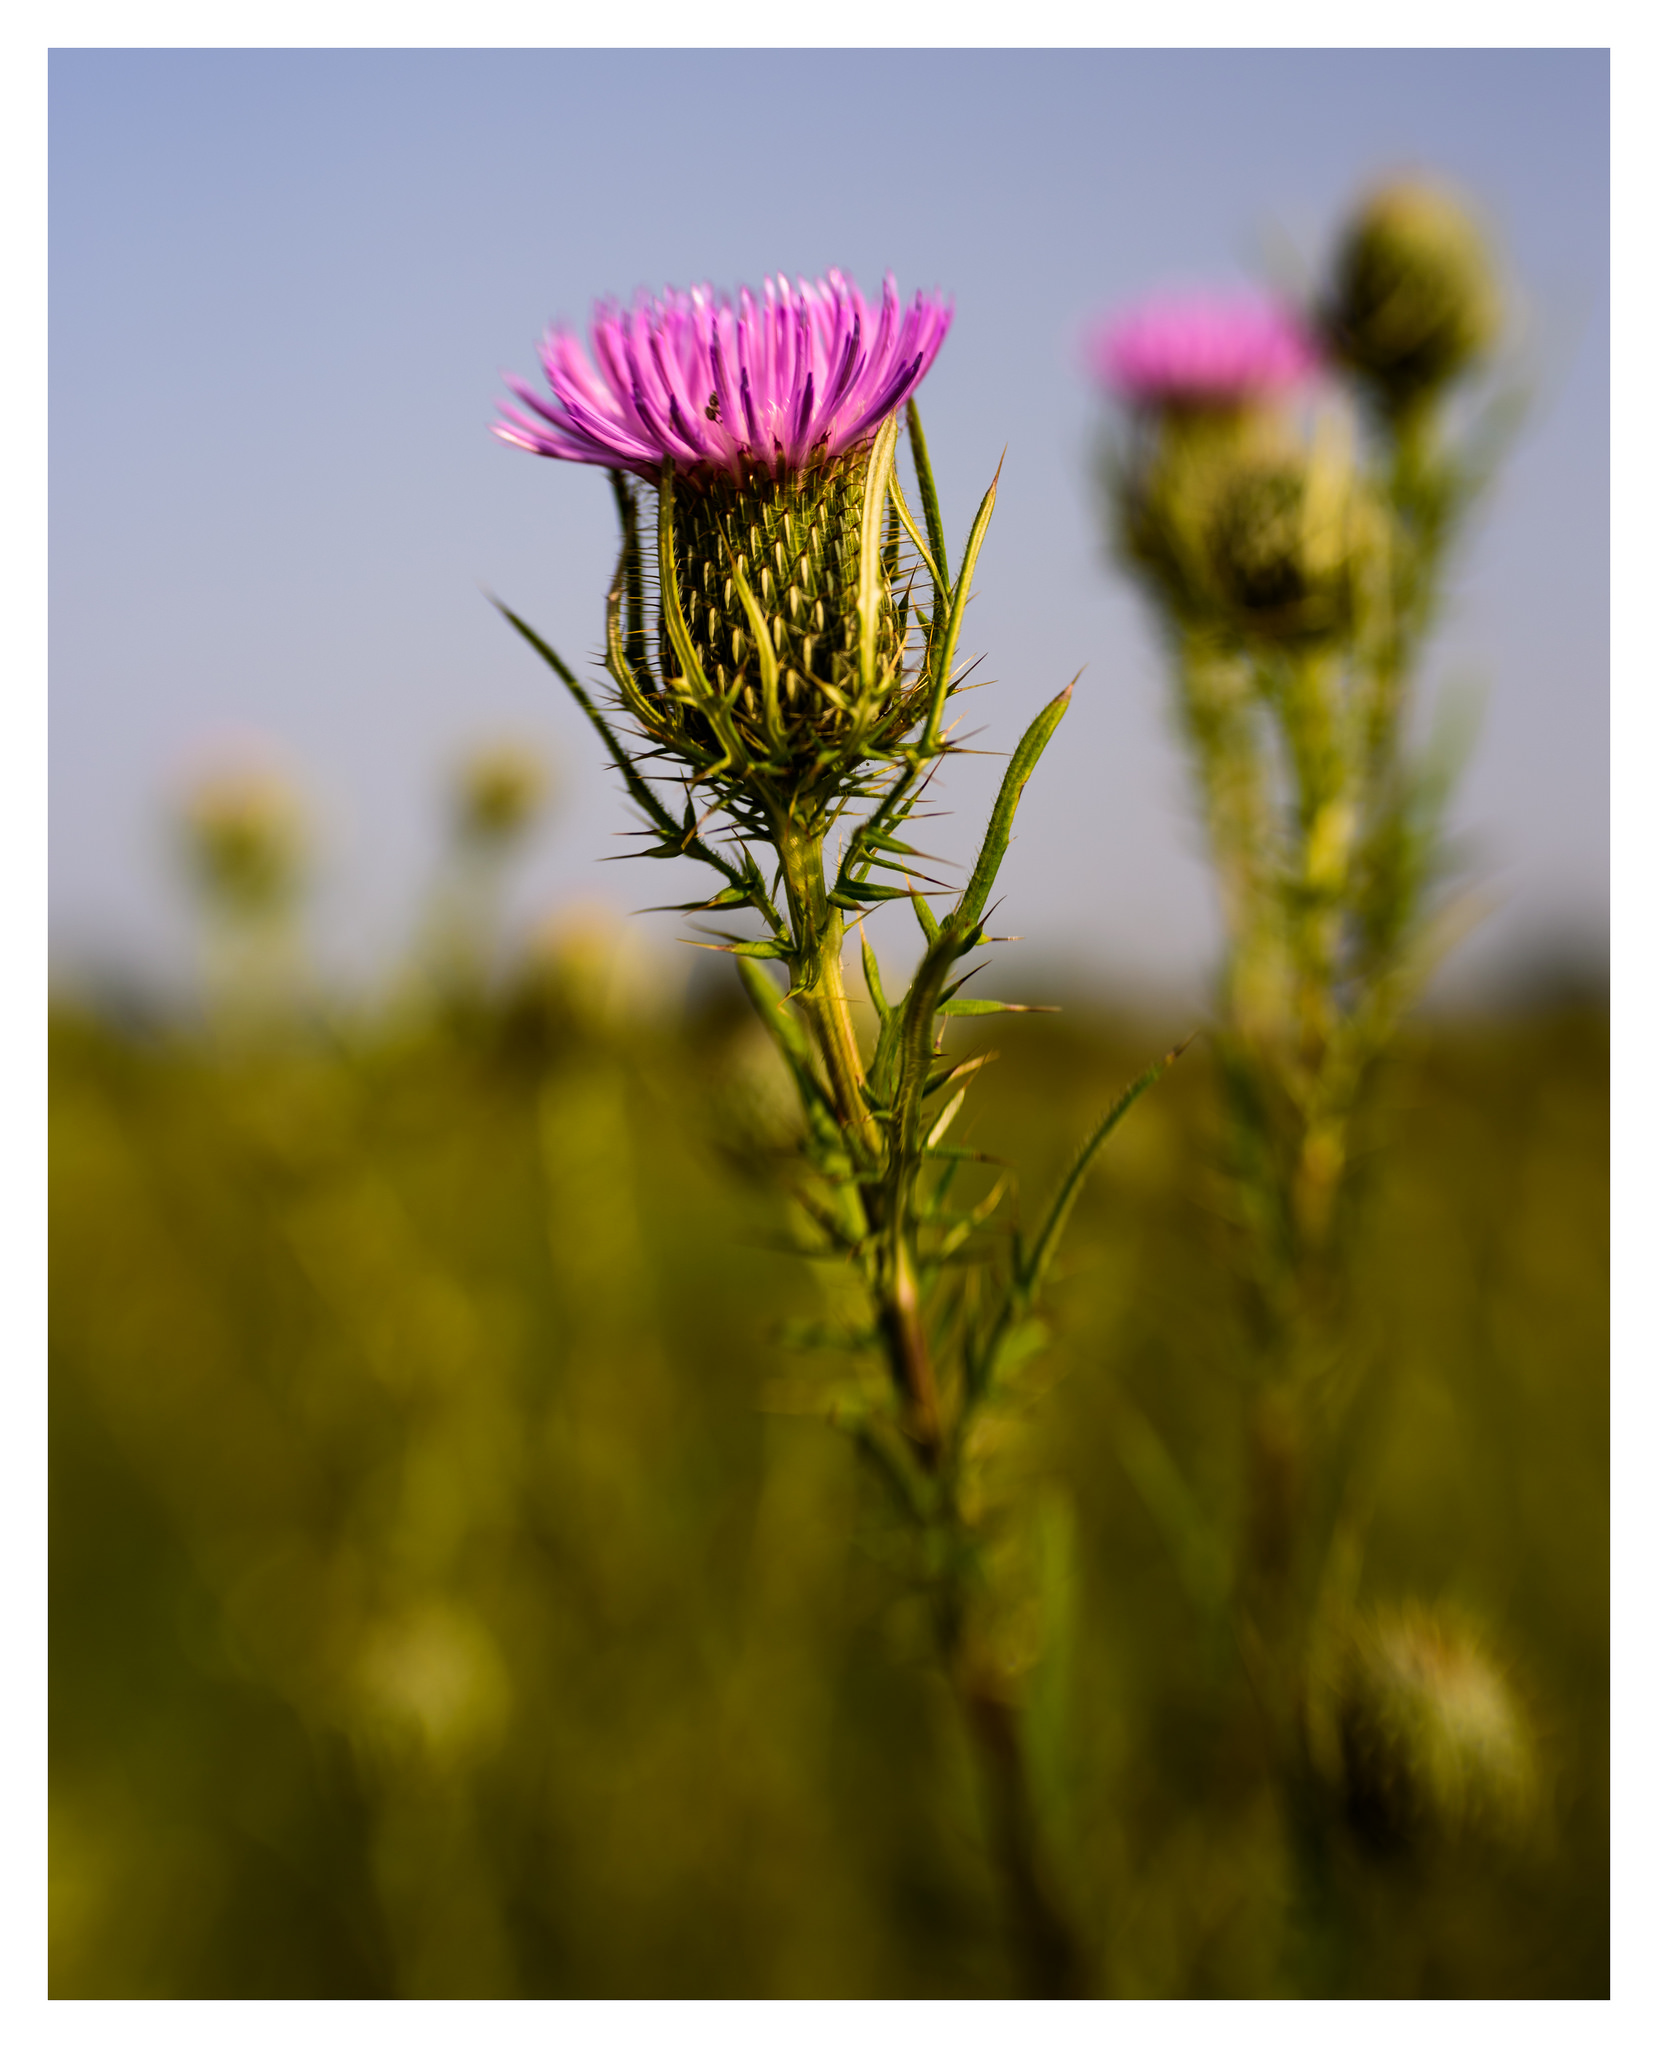 Thistle at Twin Creek Metropark - Nikon D750 w/Lensbaby Sol 45 lens